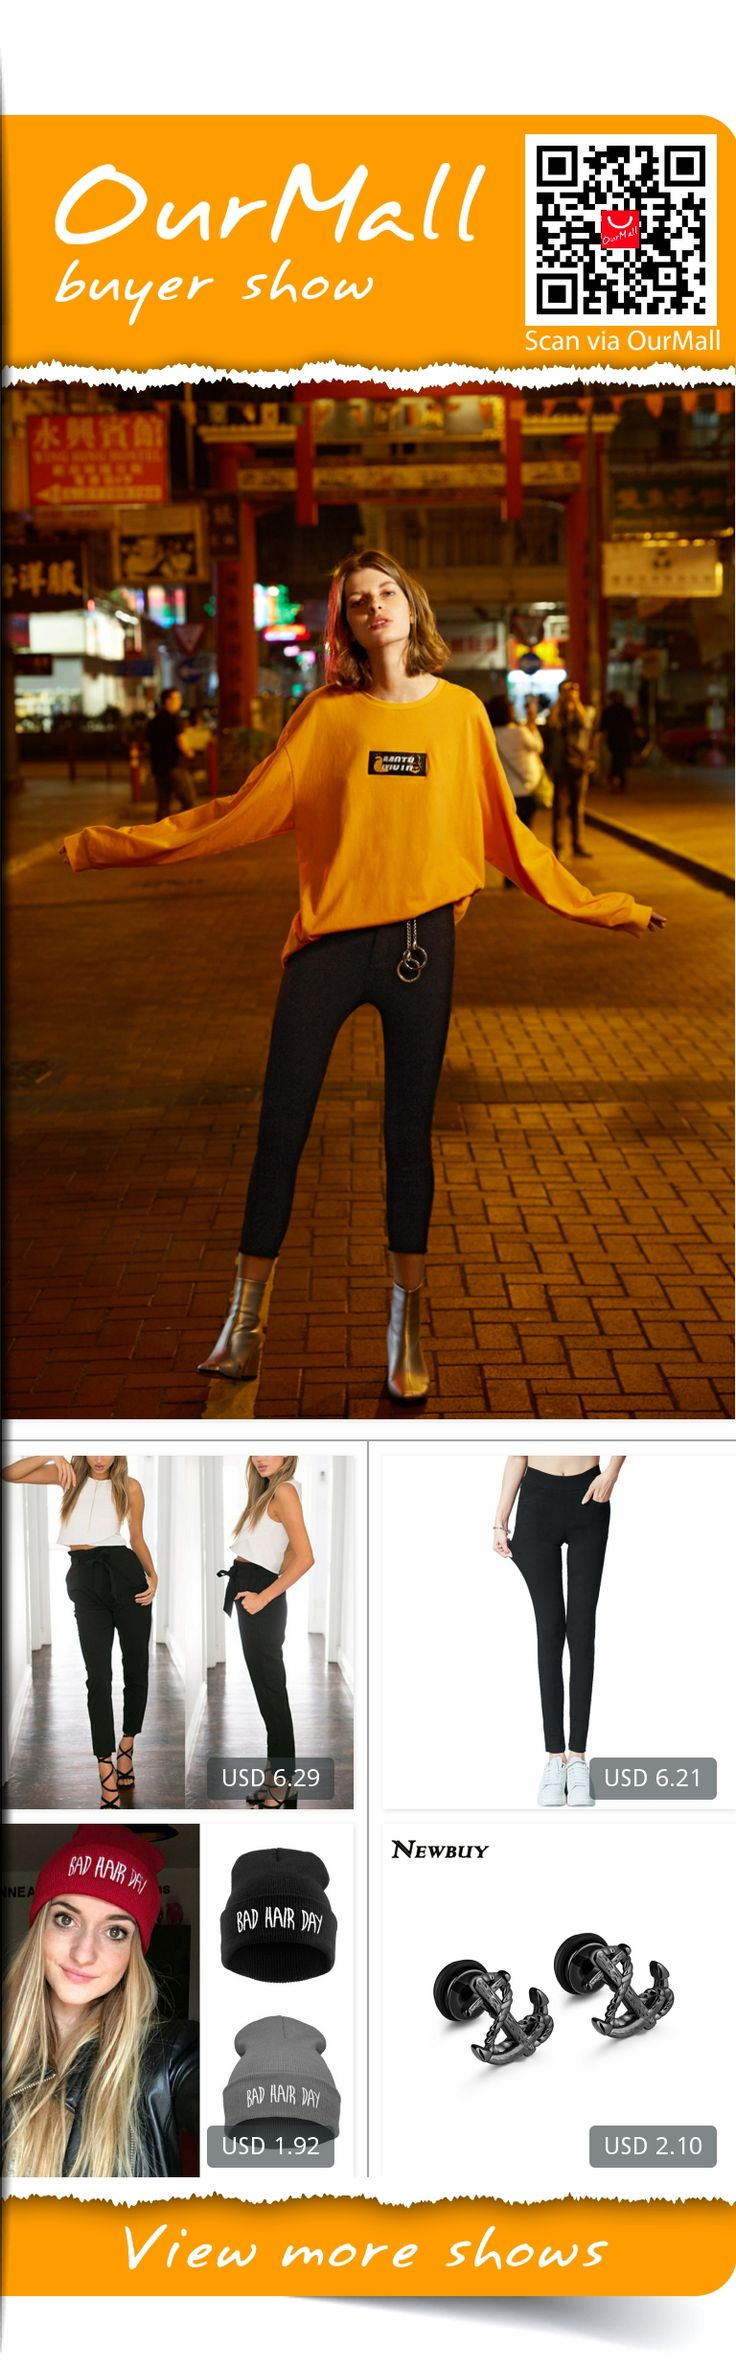 orange sweater and jeans, , http://ourmall.com/r/iU3eQj 、#shirt #Tshirt #jeans #bag #women #top #dress #skirt #cap #sunglass #denim #pant #shortsleeve #spring #fashion #sweater #ring #belt #female #lookbook #outoftheday #ootd #outfit #pant #hat #necklace #shorts #top #shoes #heel #jacket #coat #outerwear #flat #handbag #crossbag #clothes